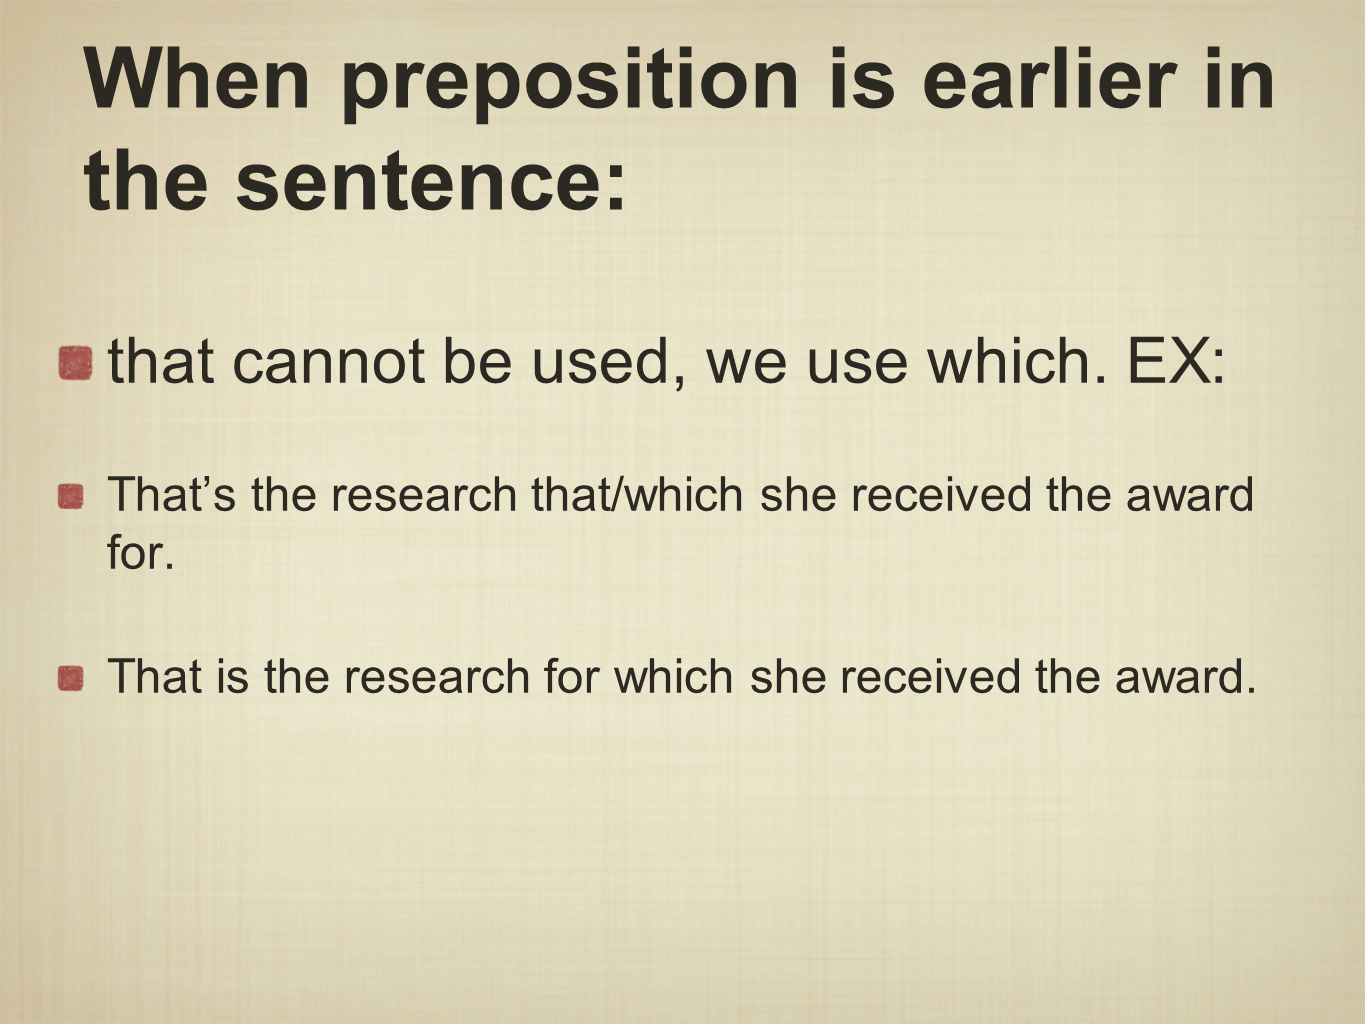 When preposition is earlier in the sentence: that cannot be used, we use which.